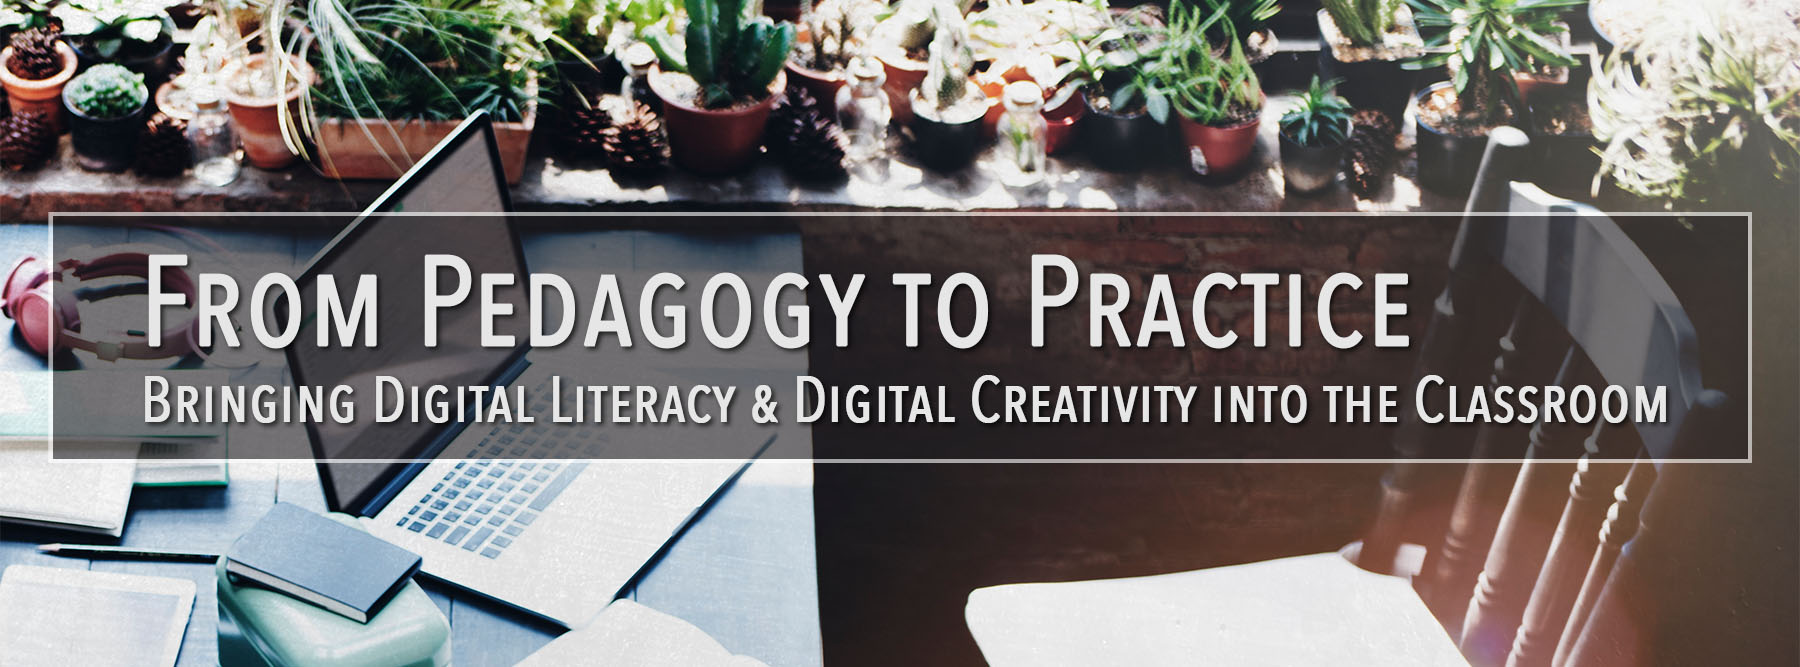 From Pedagogy to Practice: Bringing Digital Literacy and Digital Creativity into the Classroom